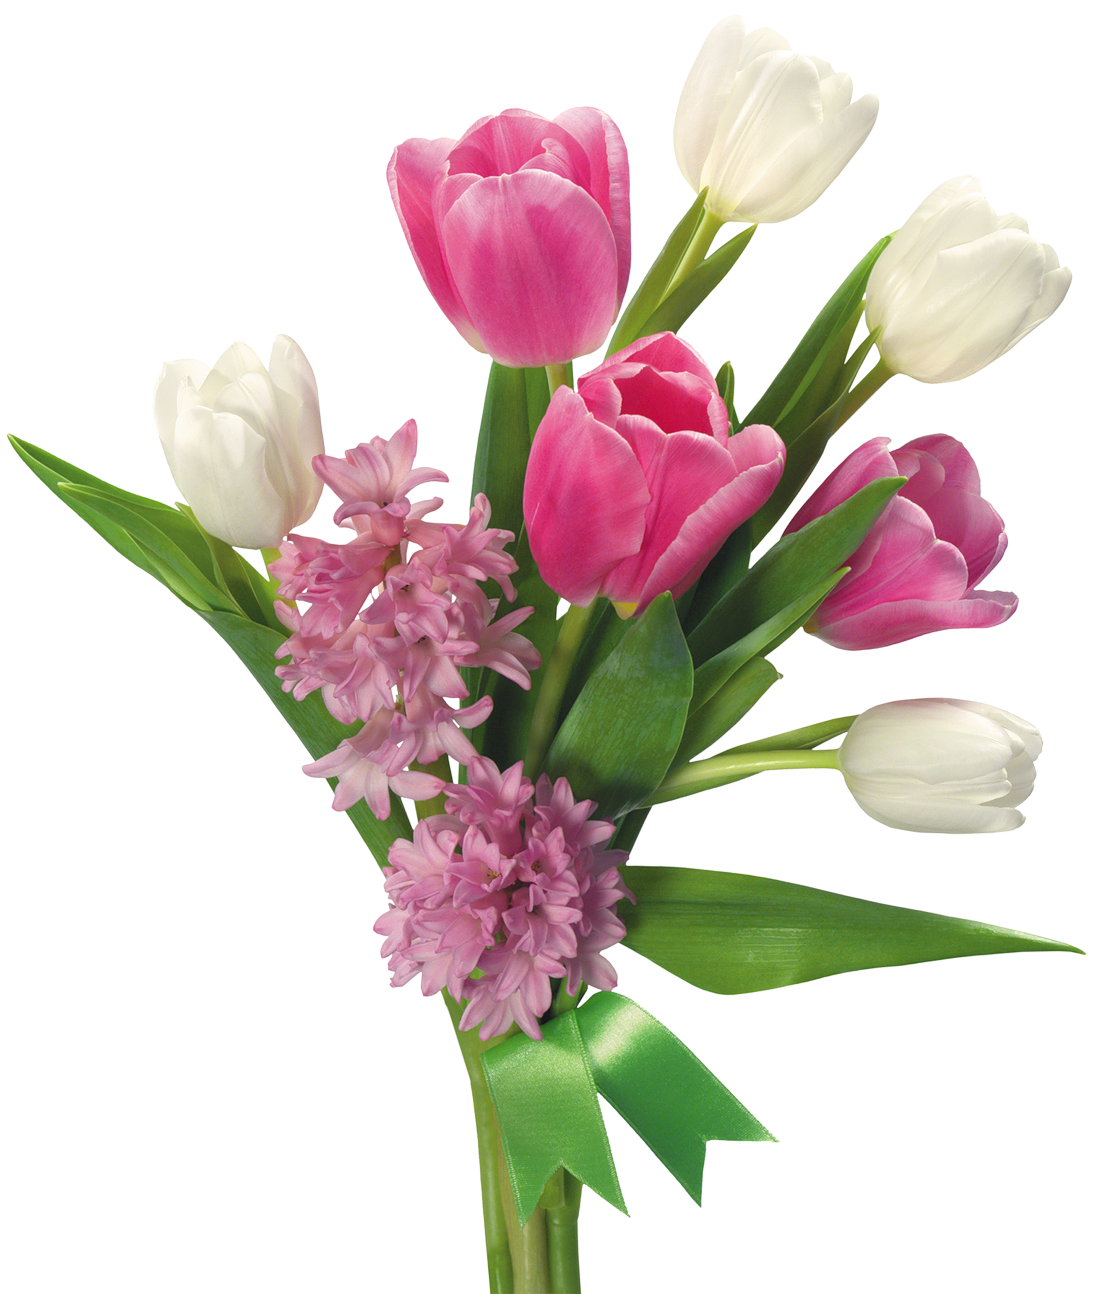 Free Flower Bouquet Transparent Background, Download Free.